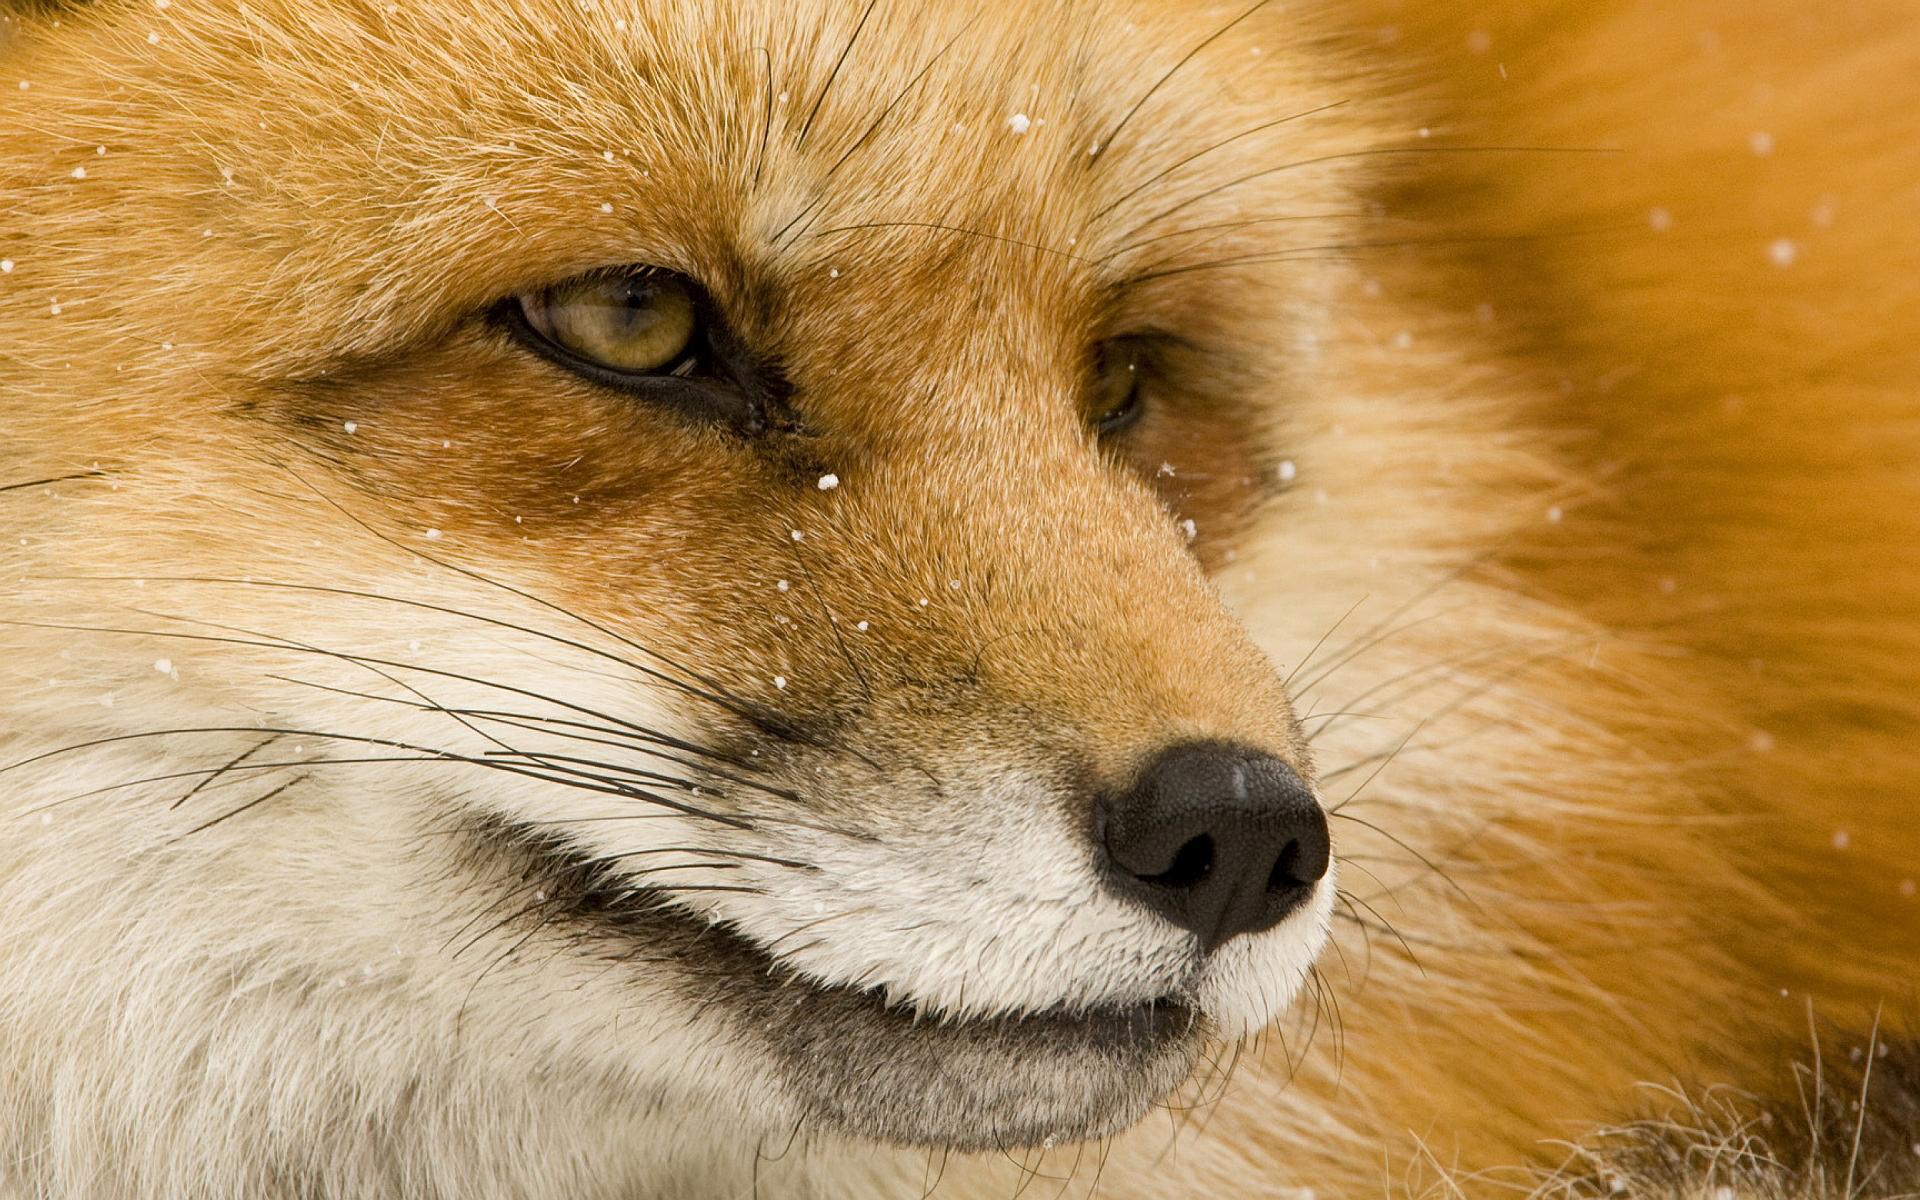 Fox eyes hd Wallpapers Pictures Photos Images. «